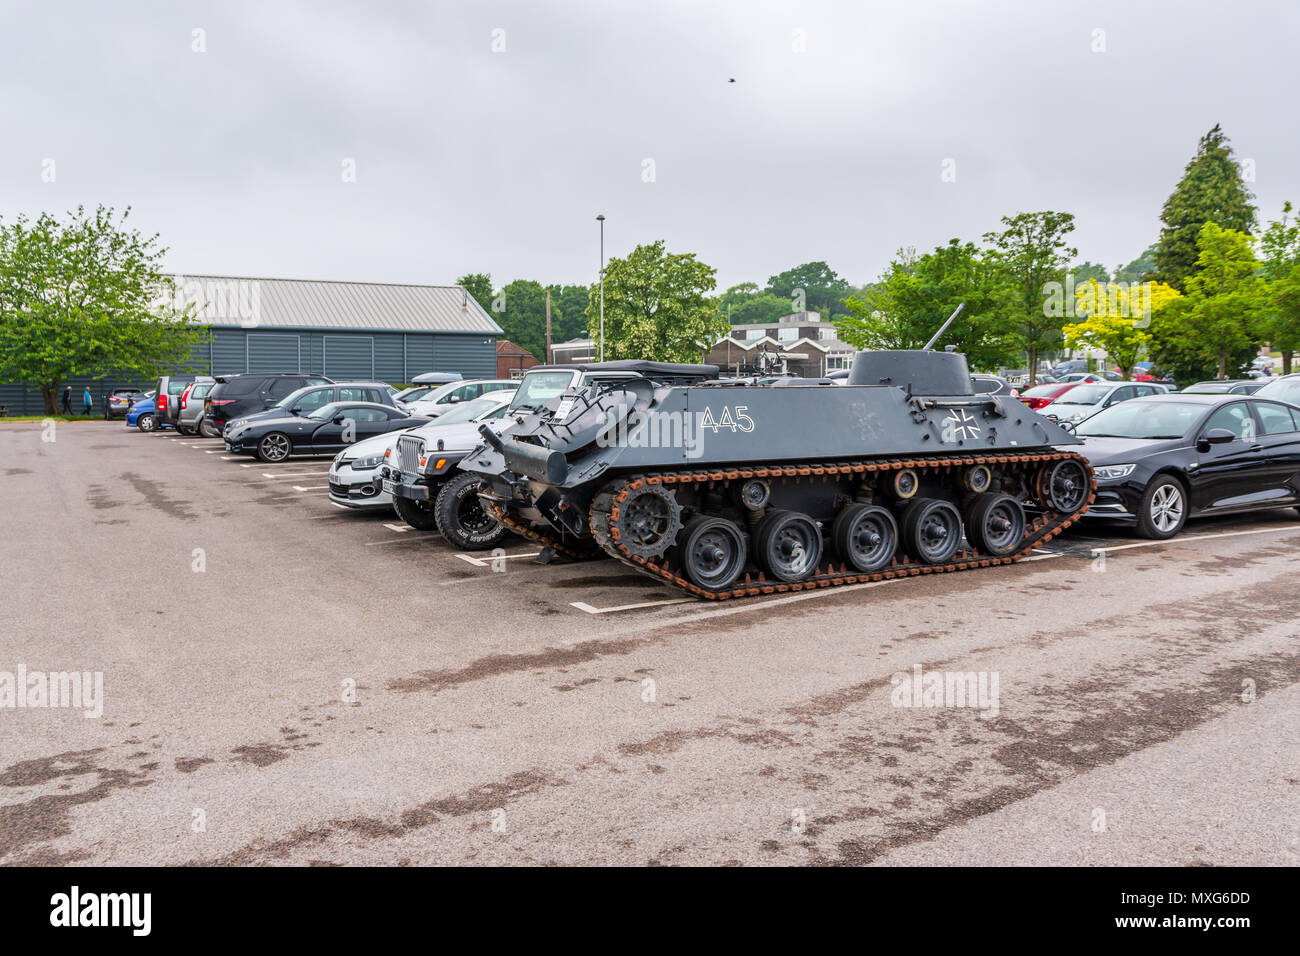 A tank parked in the car park of the tank museum - Stock Image